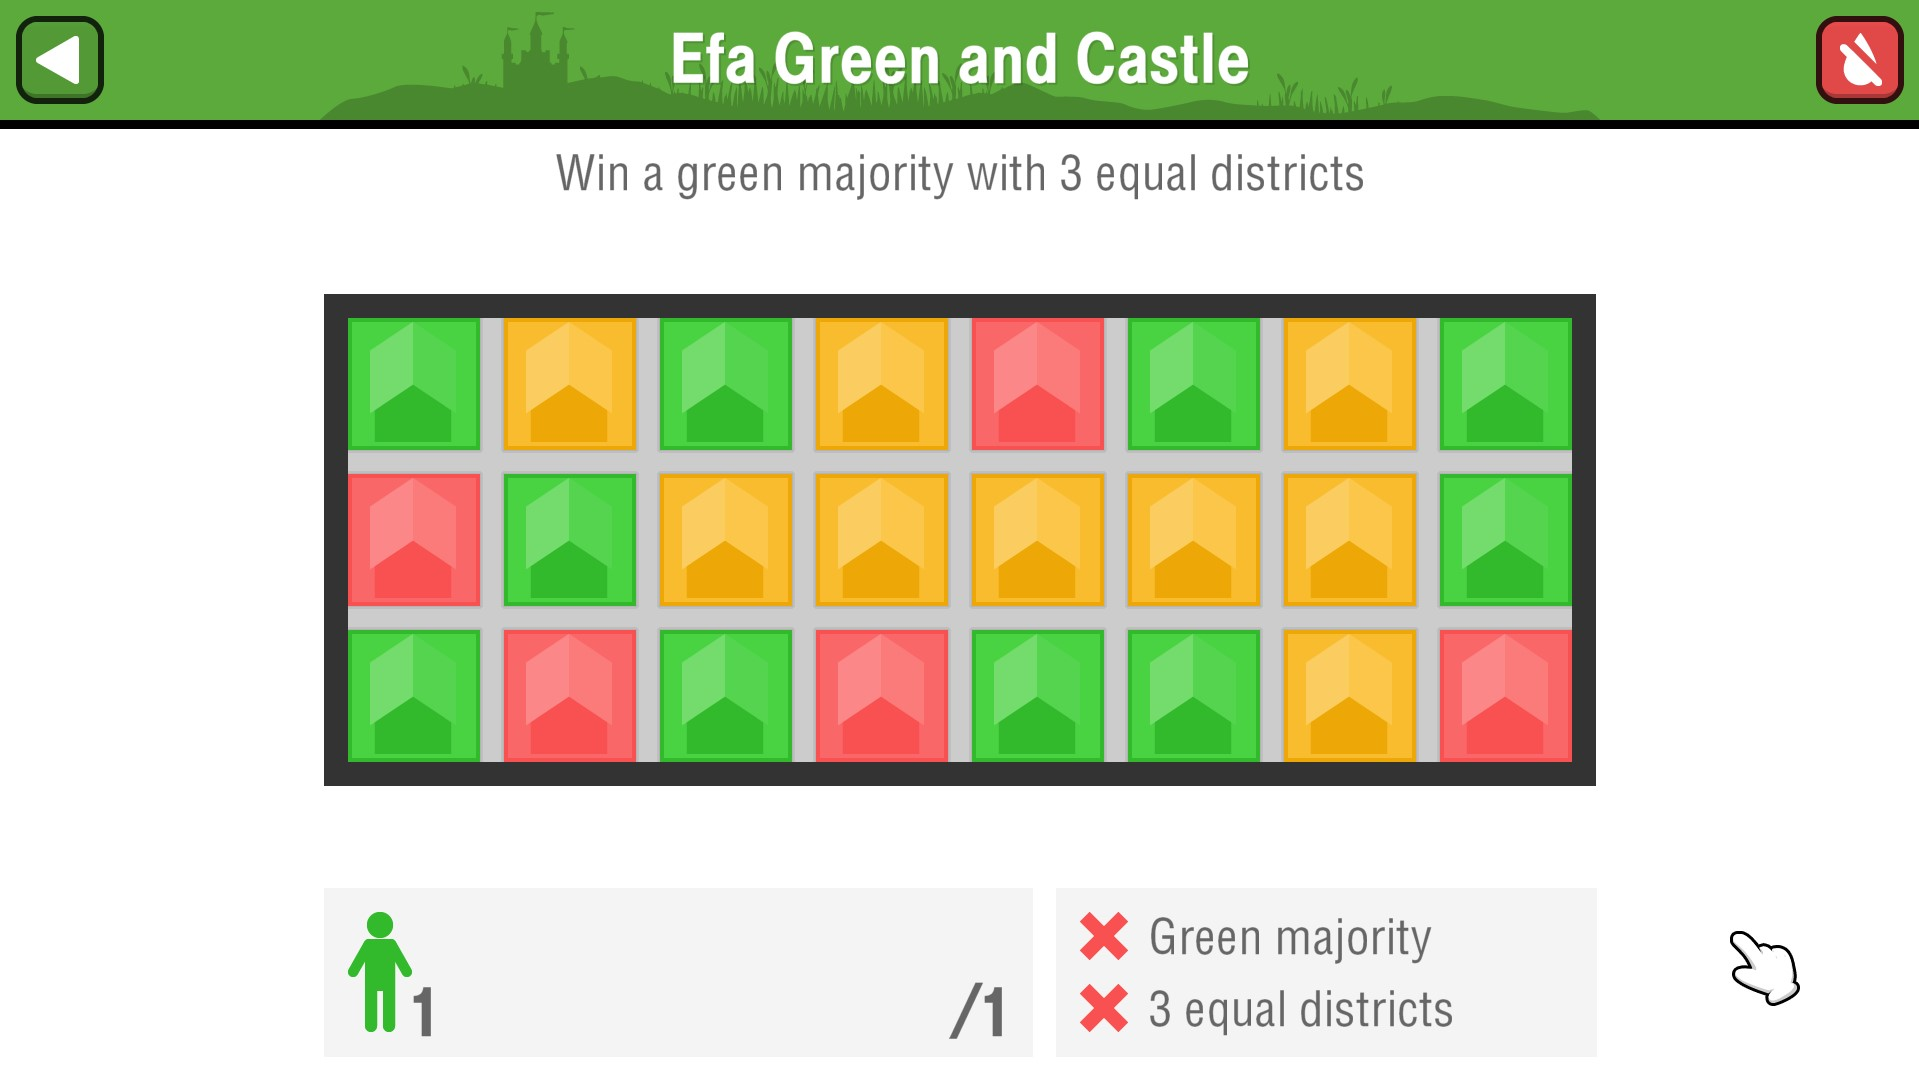 Efa Green and Castle